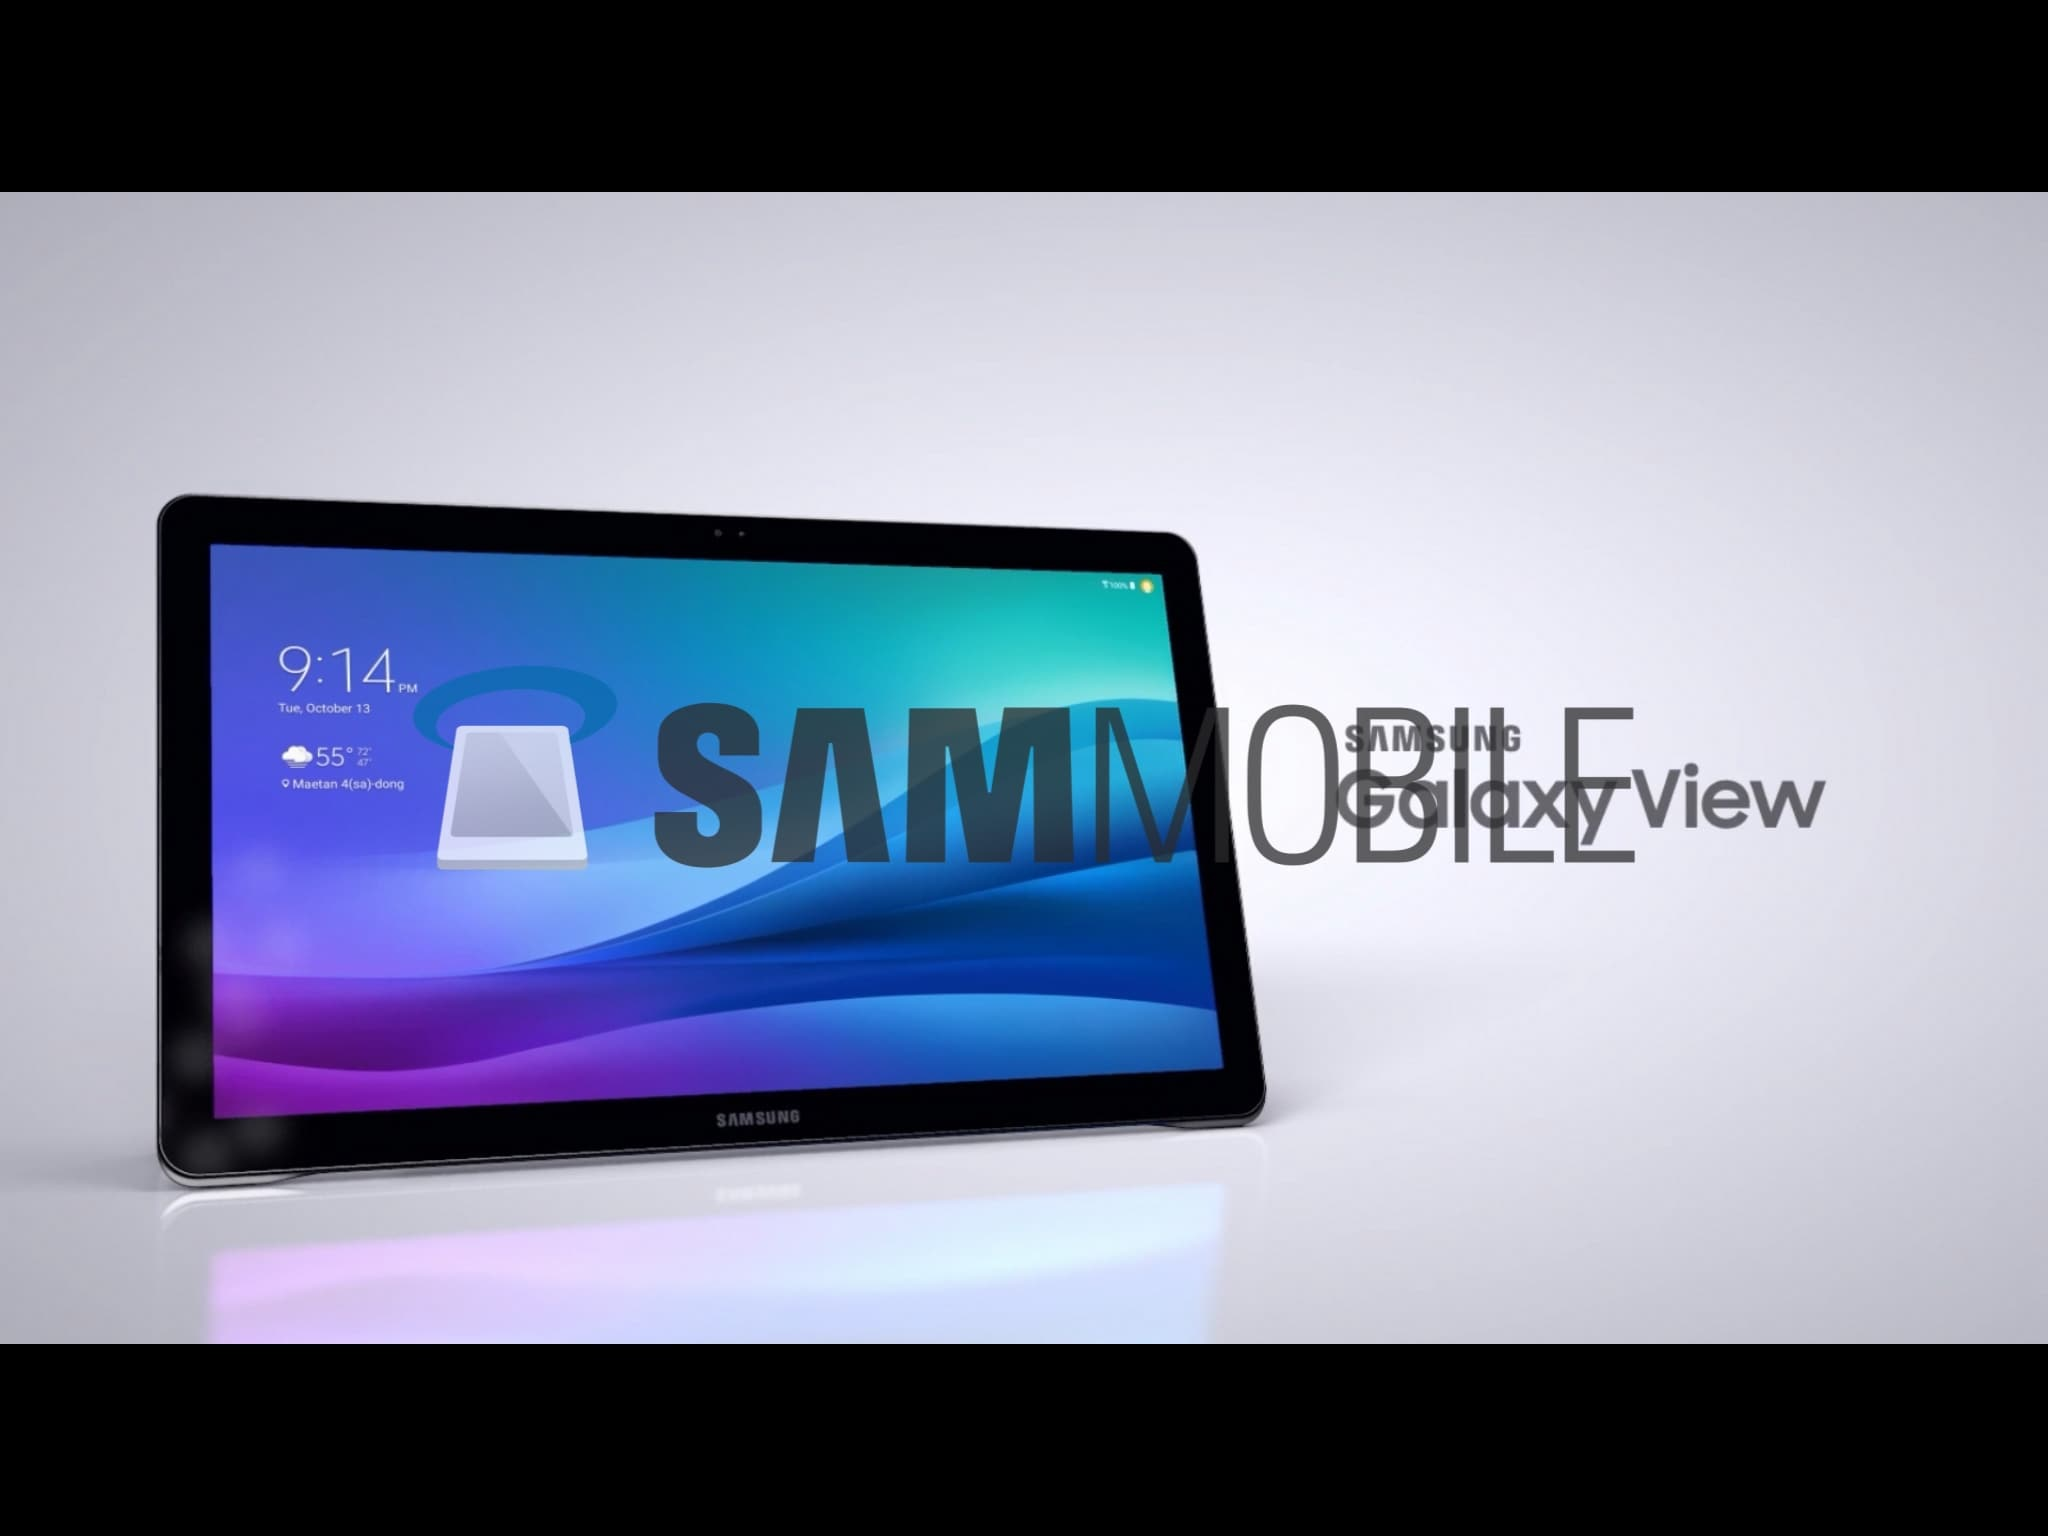 Samsung Galaxy View leaked – 5